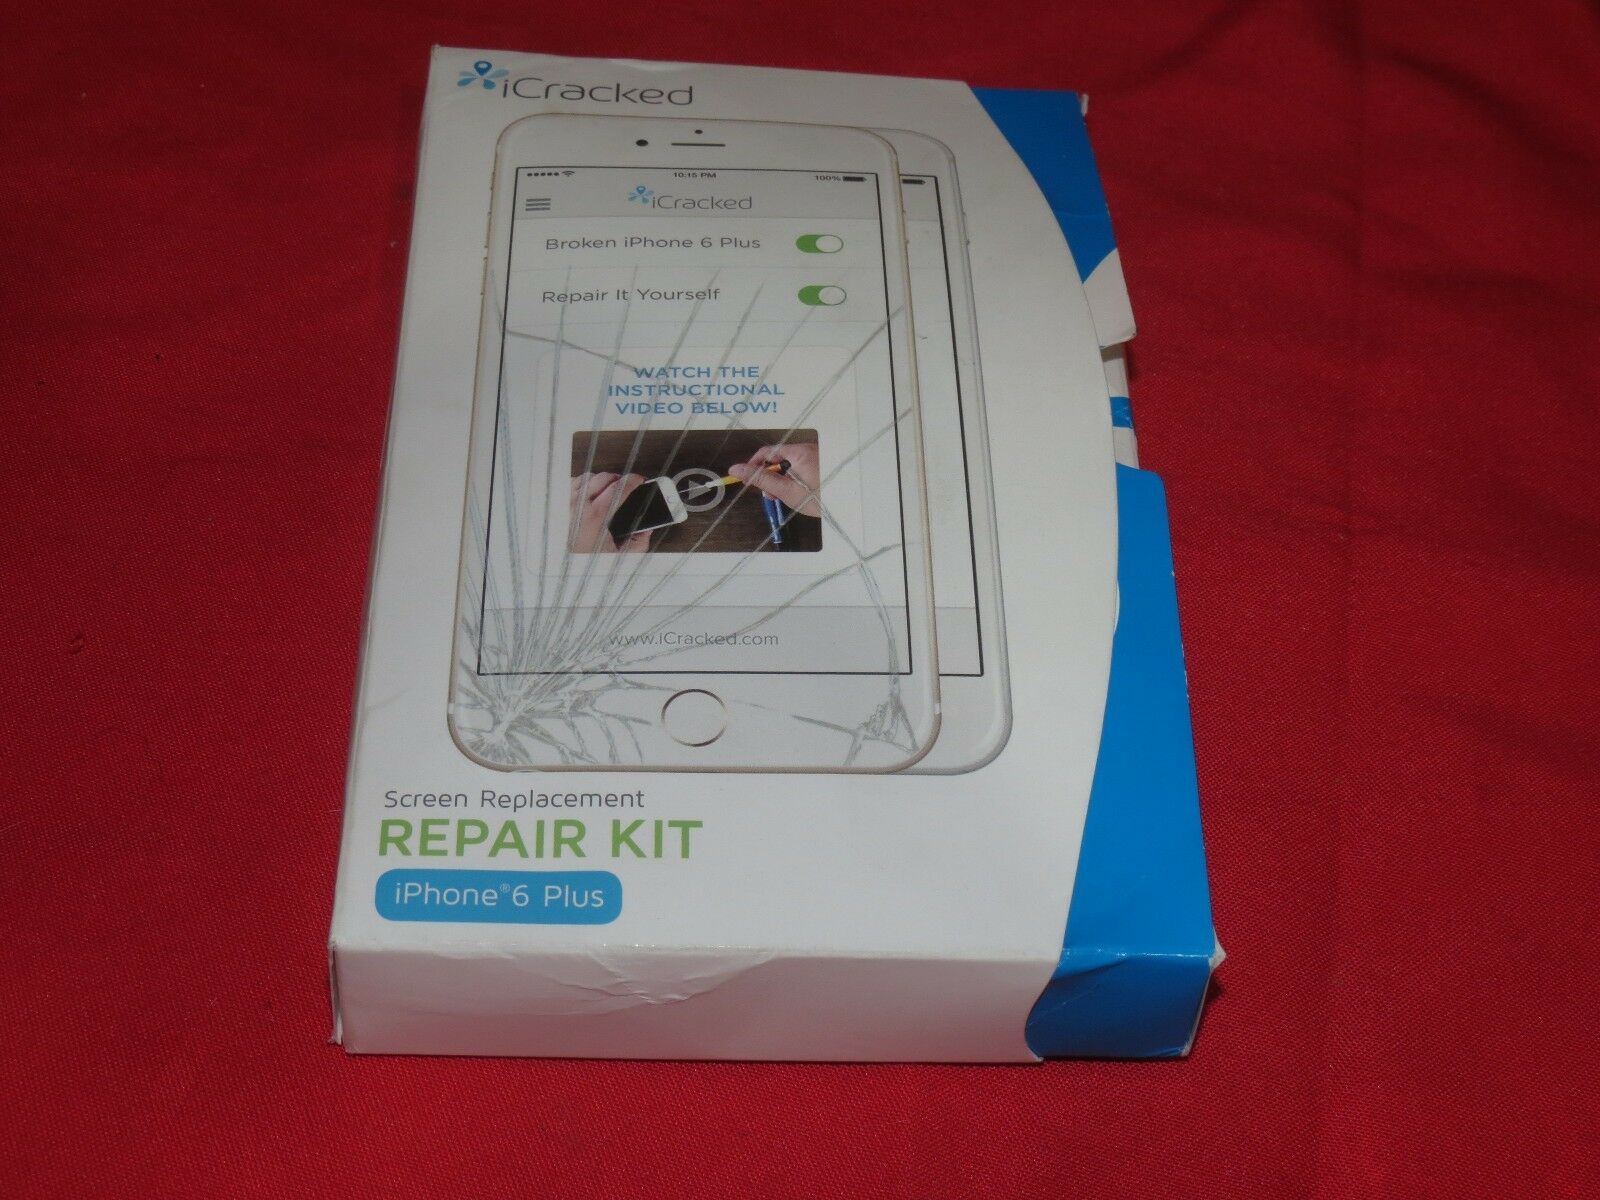 Icracked screen replacement repair kit iphone 6 plus white ebay resntentobalflowflowcomponentncel solutioingenieria Gallery